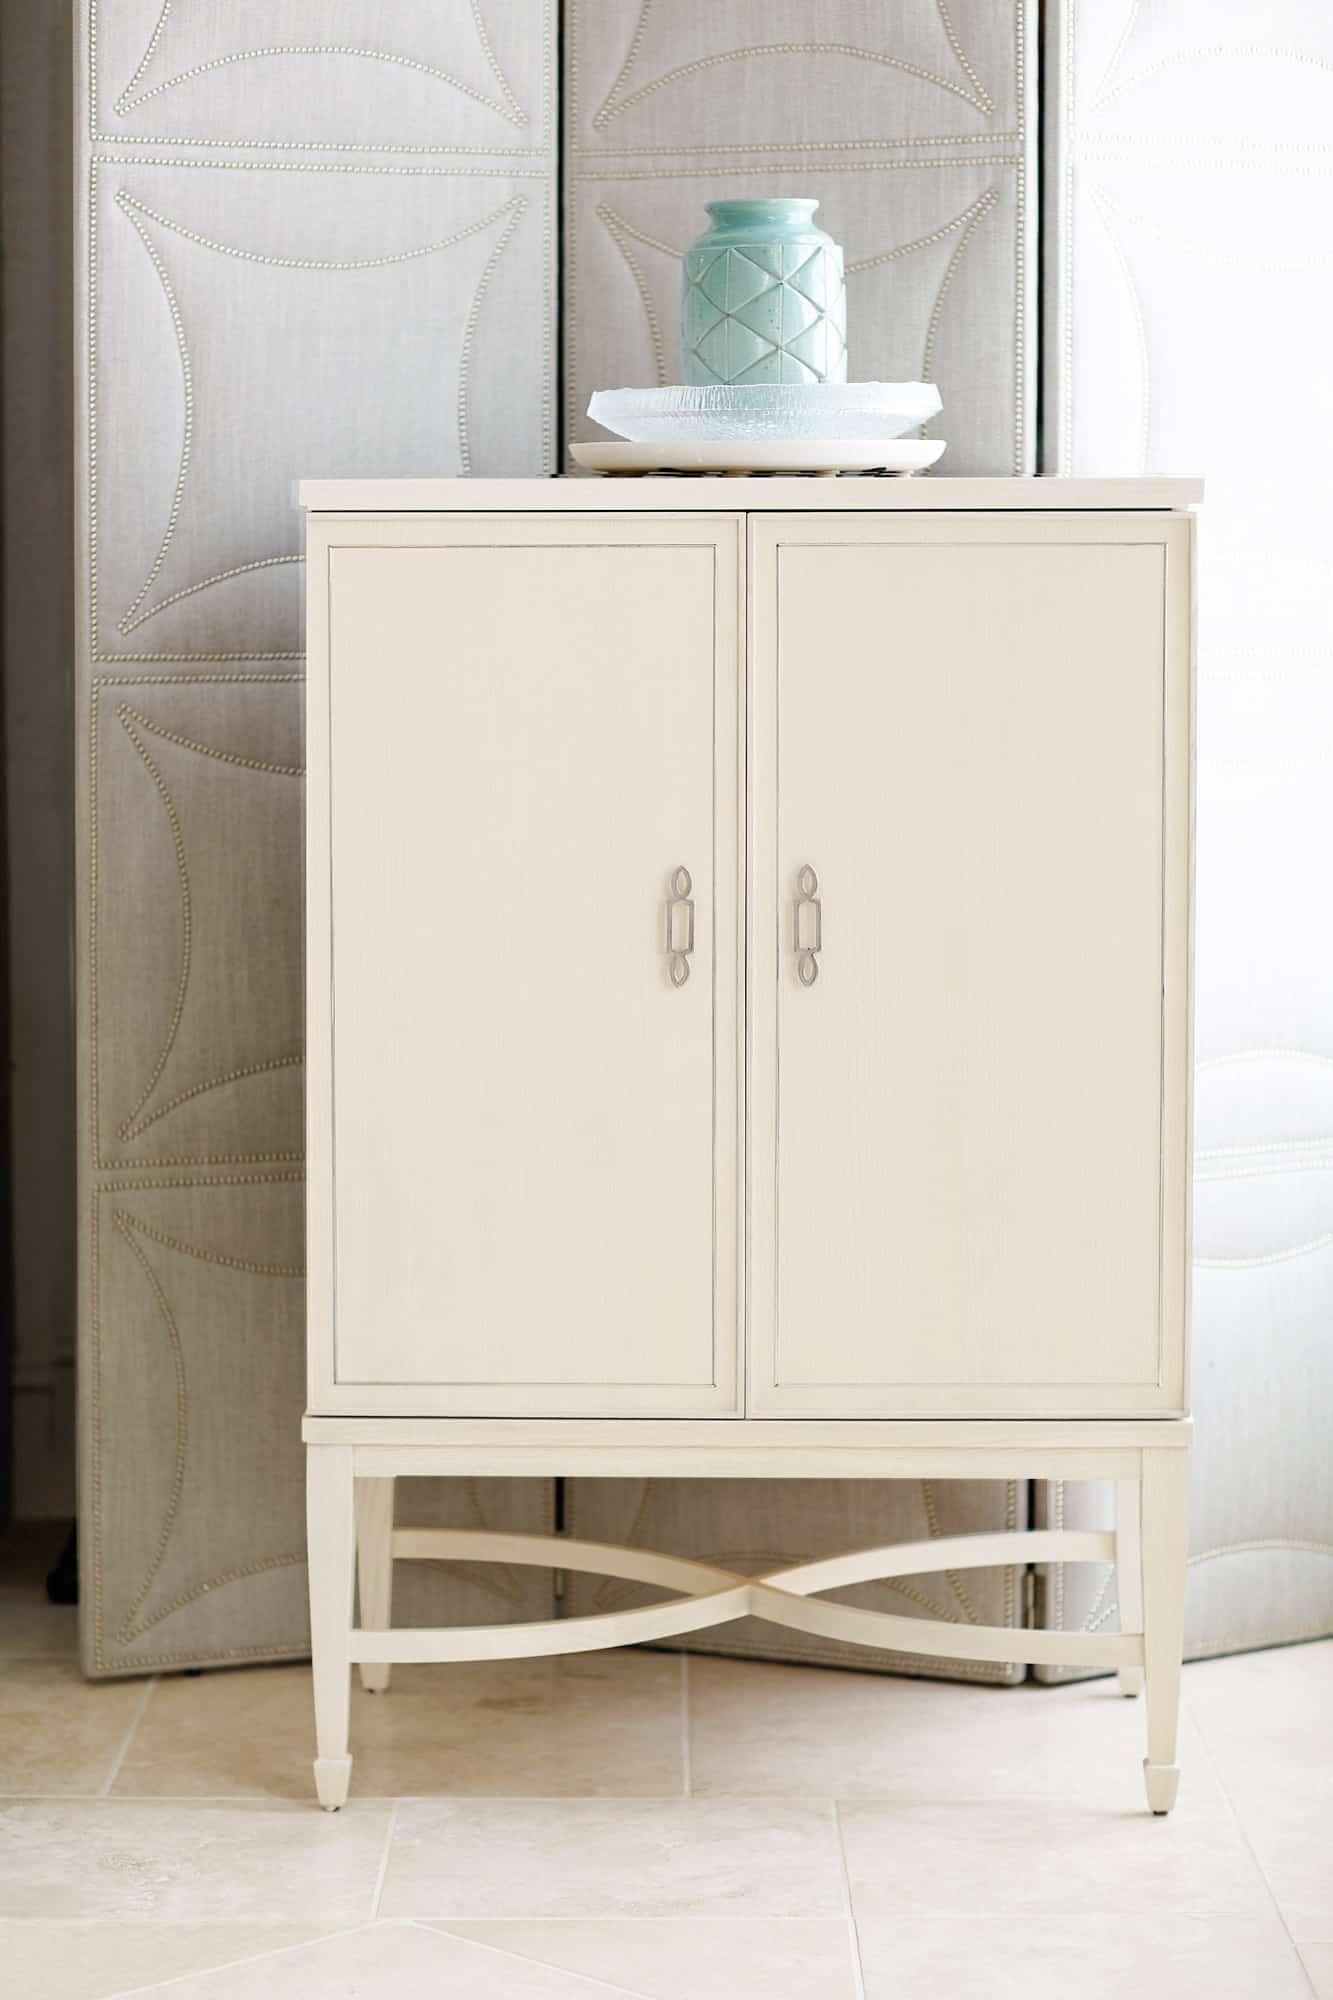 Bernhardt Armoire - 5 Fresh Ways To Use An Armoire In Your Interior Design AHT Interiors